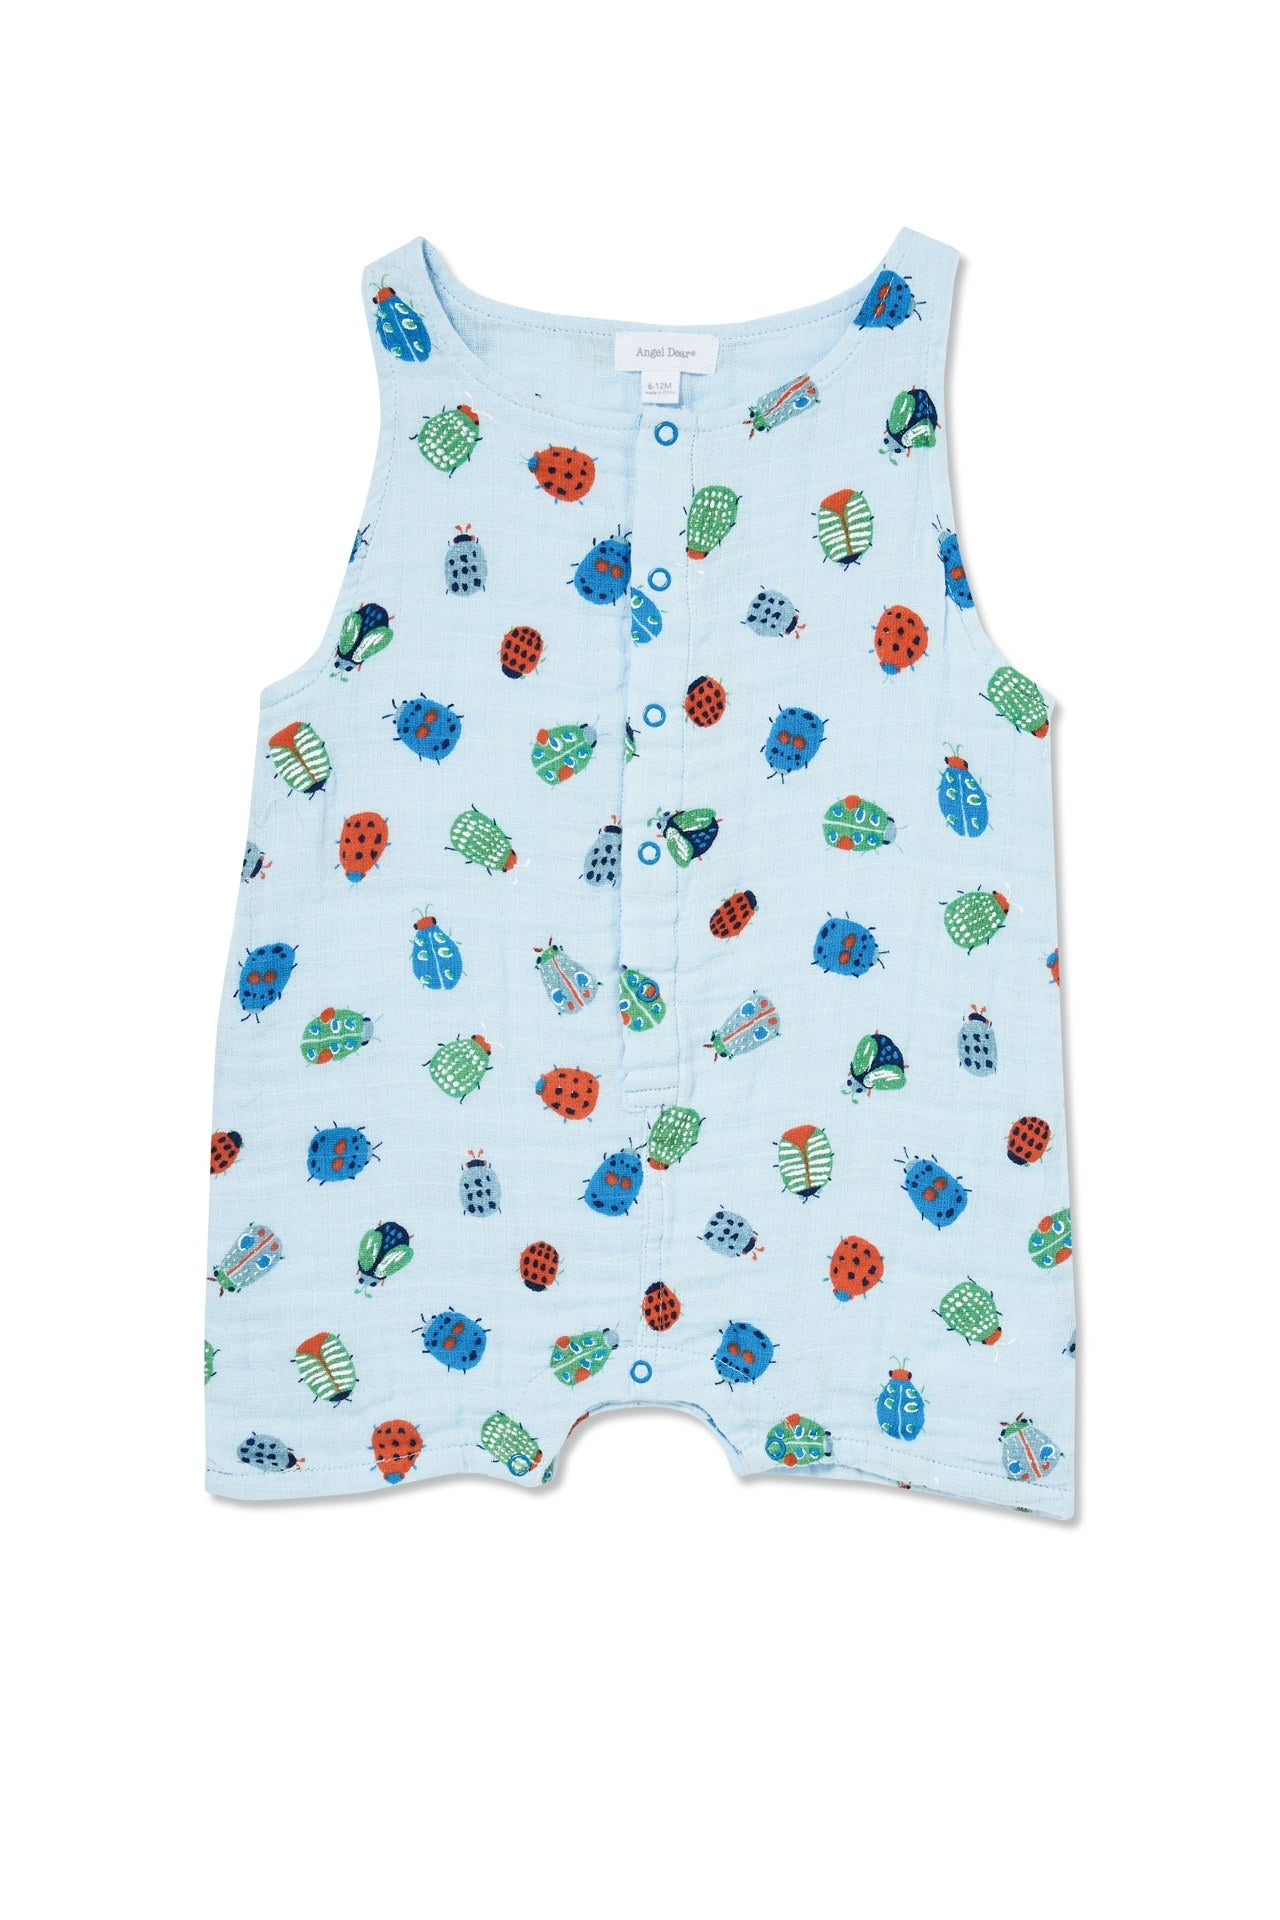 Lovely Bugs- Muslin Sleevless Shortie Romper